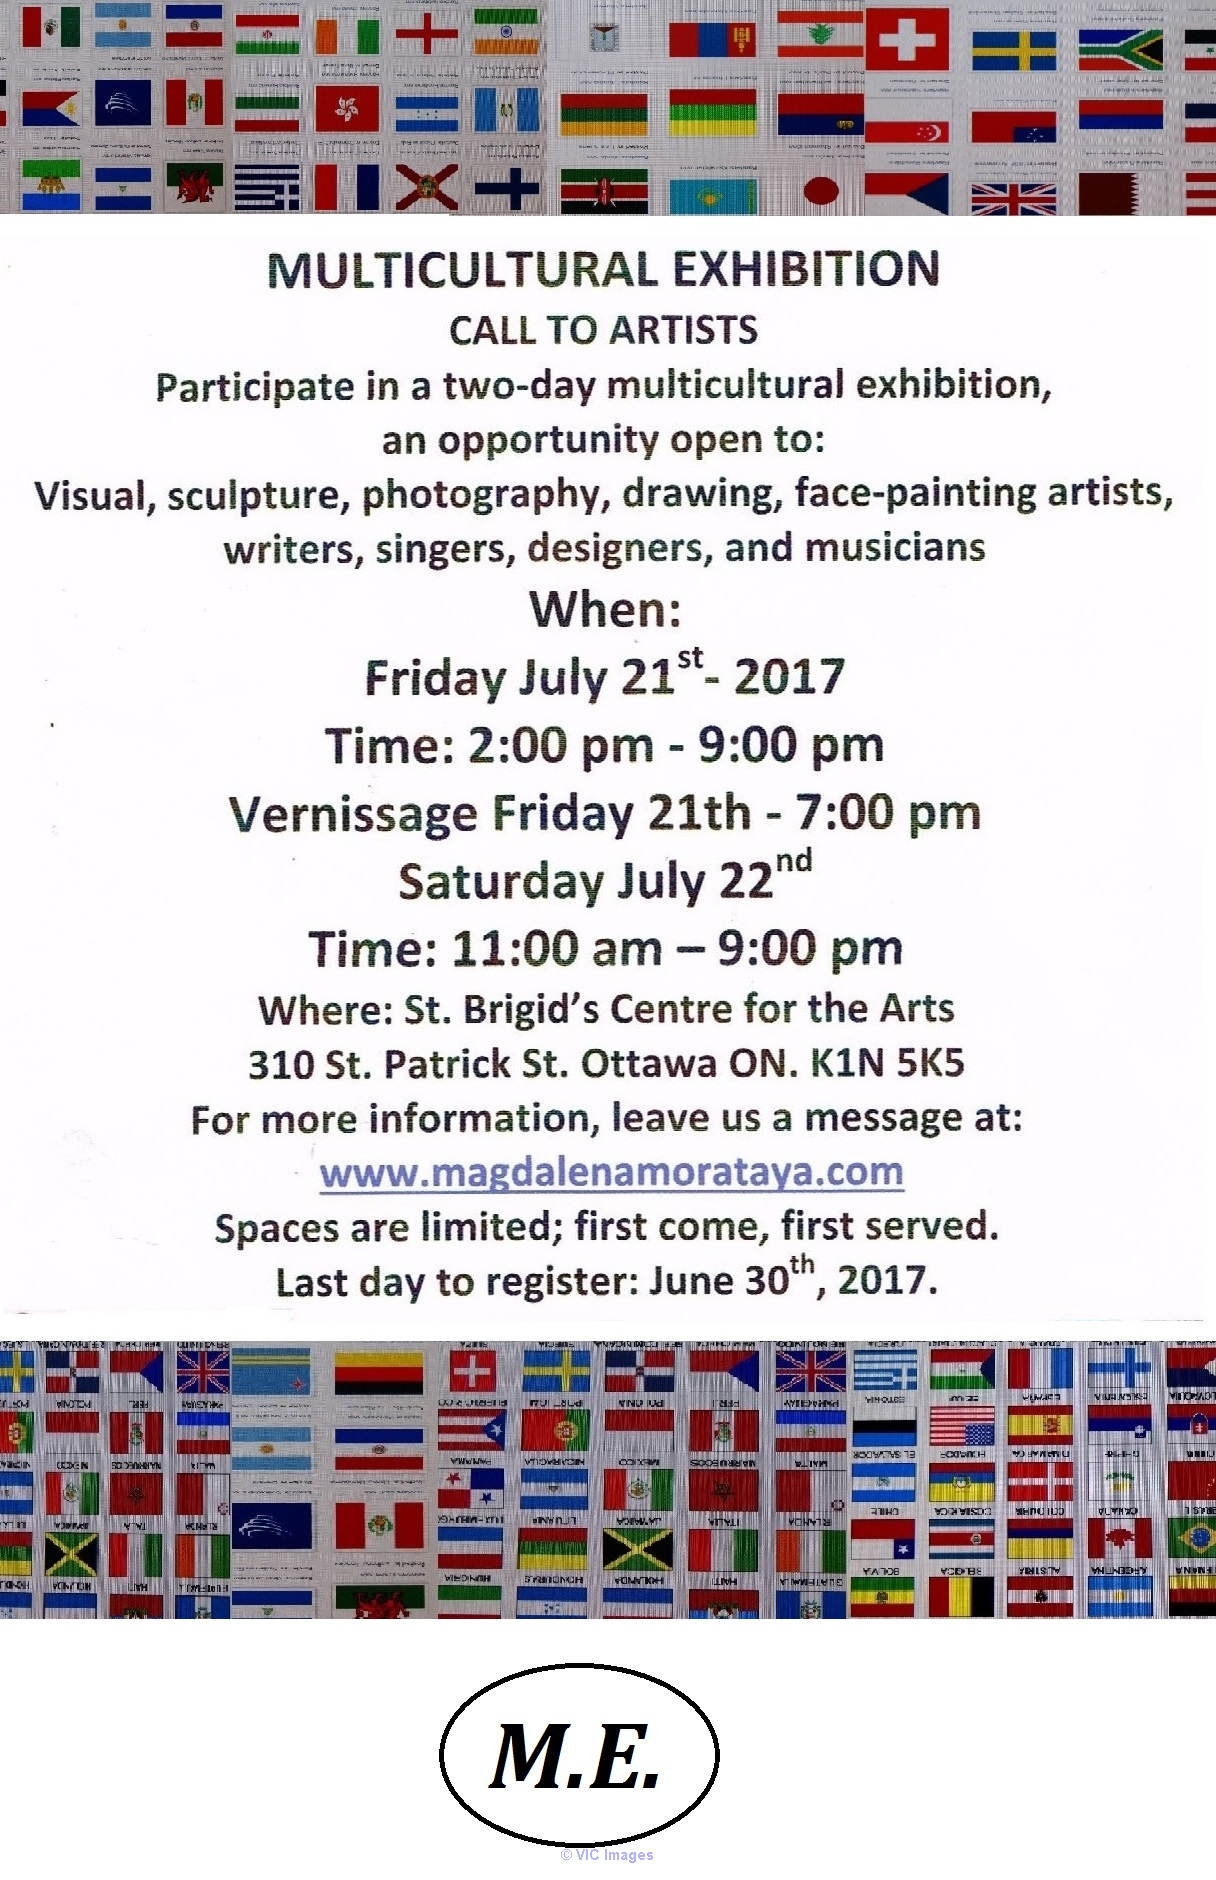 Multicultural Exhibition Ottawa, Ontario, Canada Classifieds